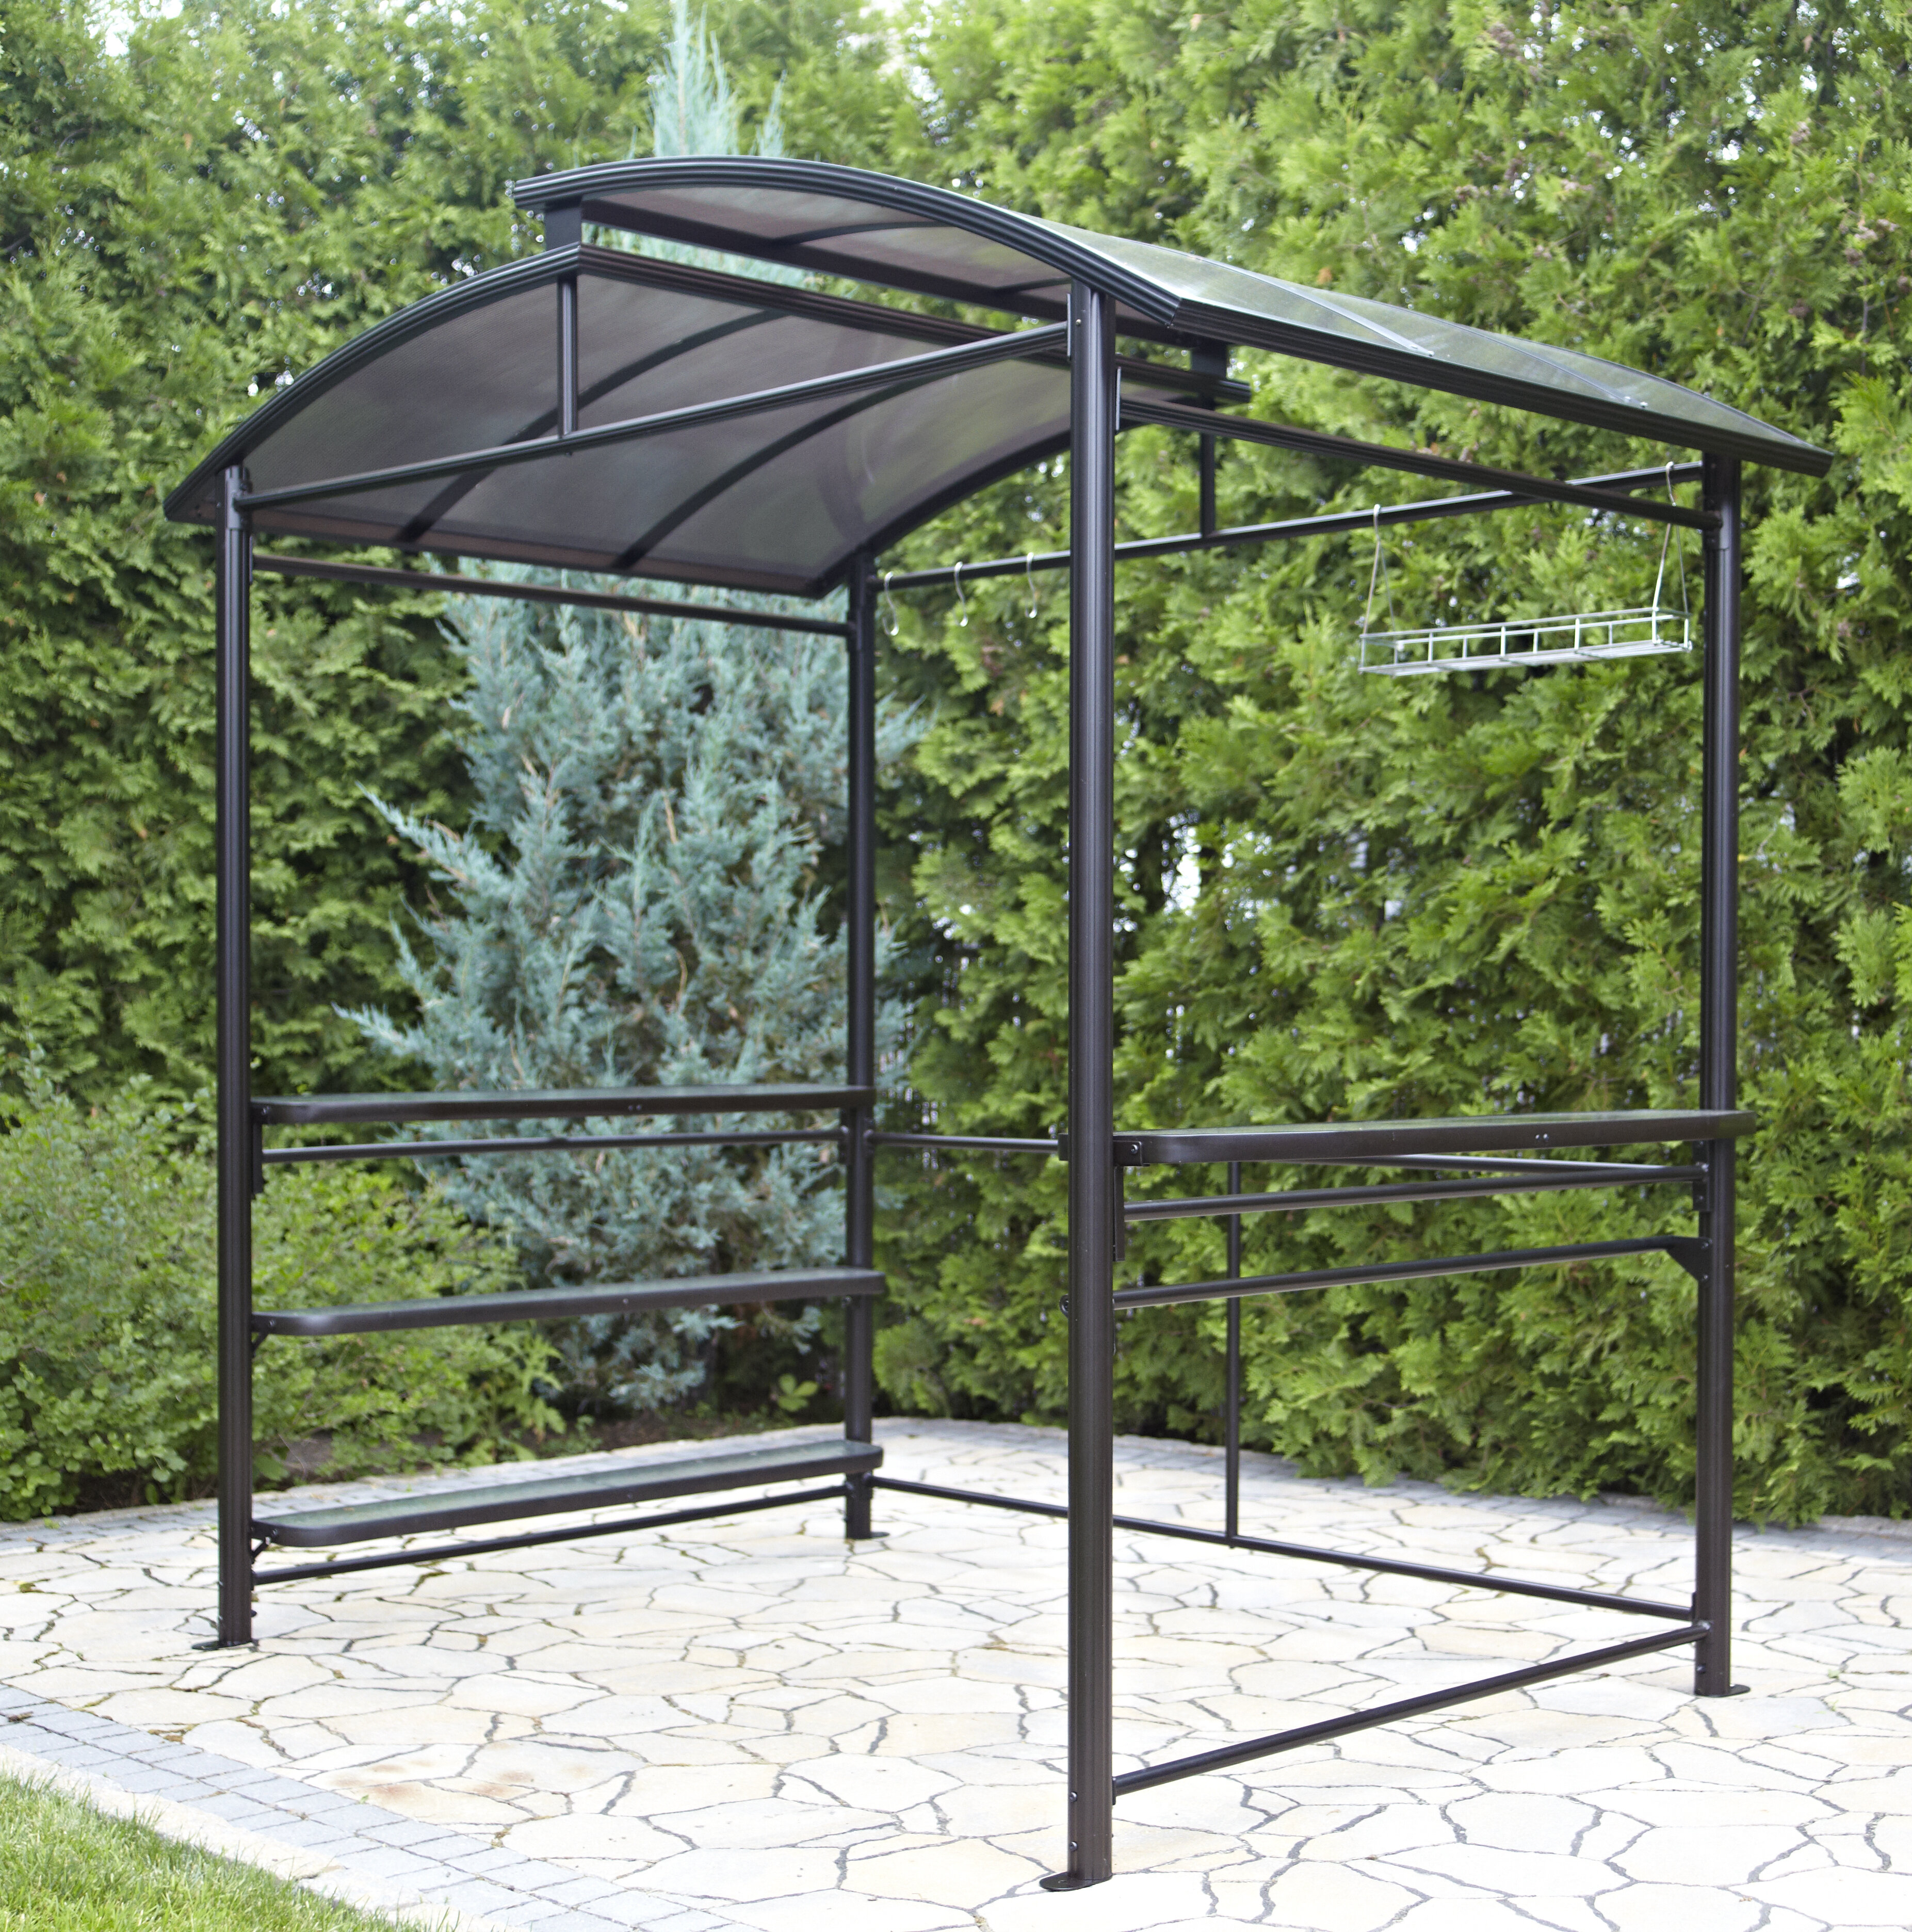 about chandelier creative gazebo french grill pinterest awning outdoor bbq ideas on best